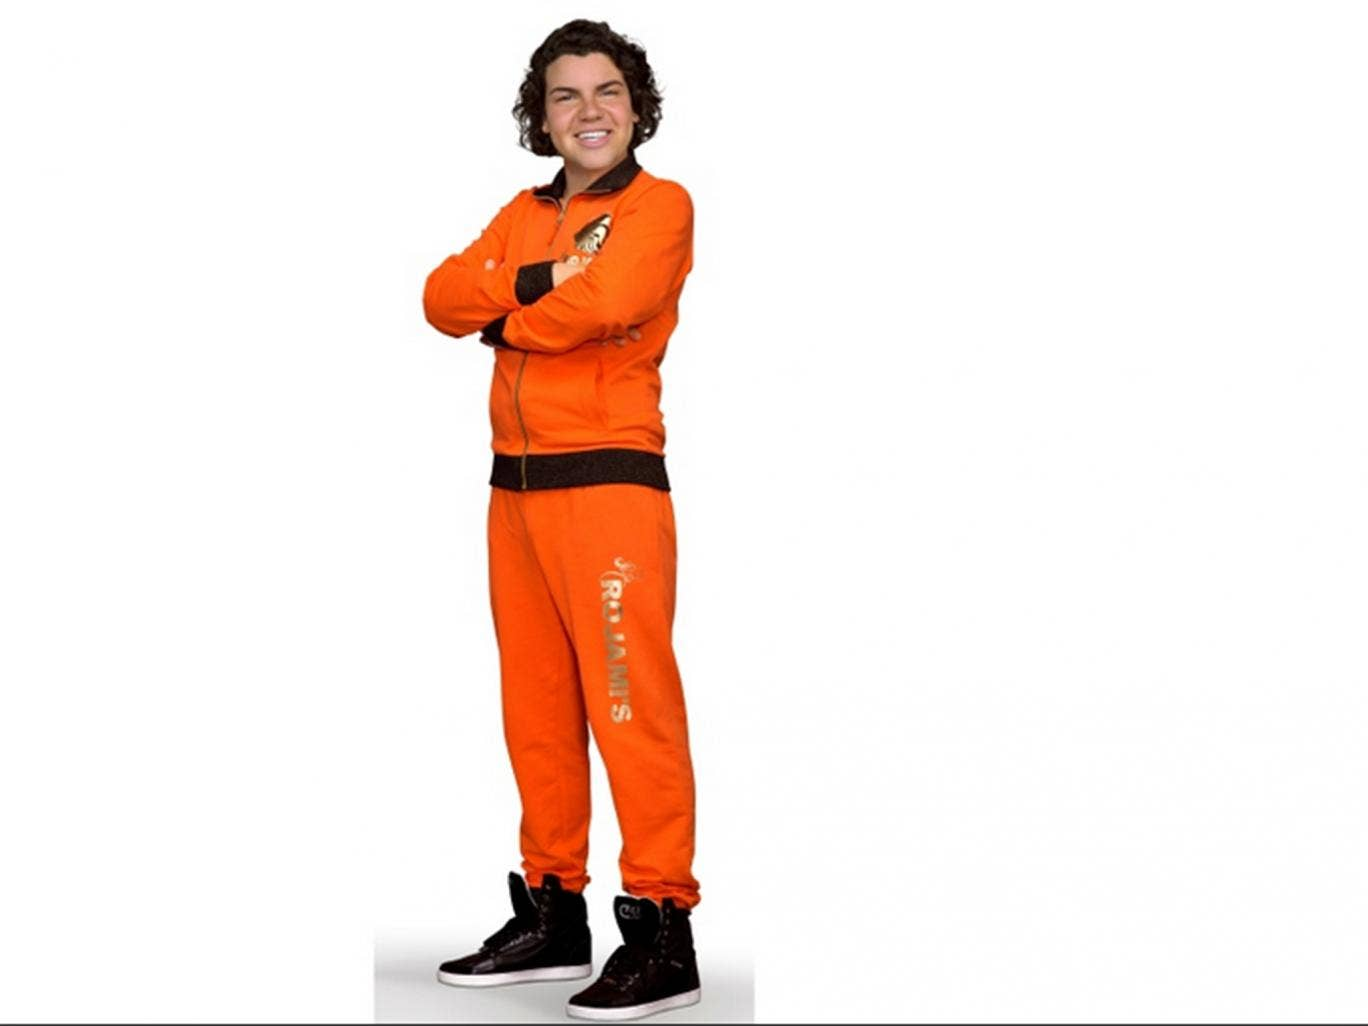 Roy Donders models the 'juichpak'